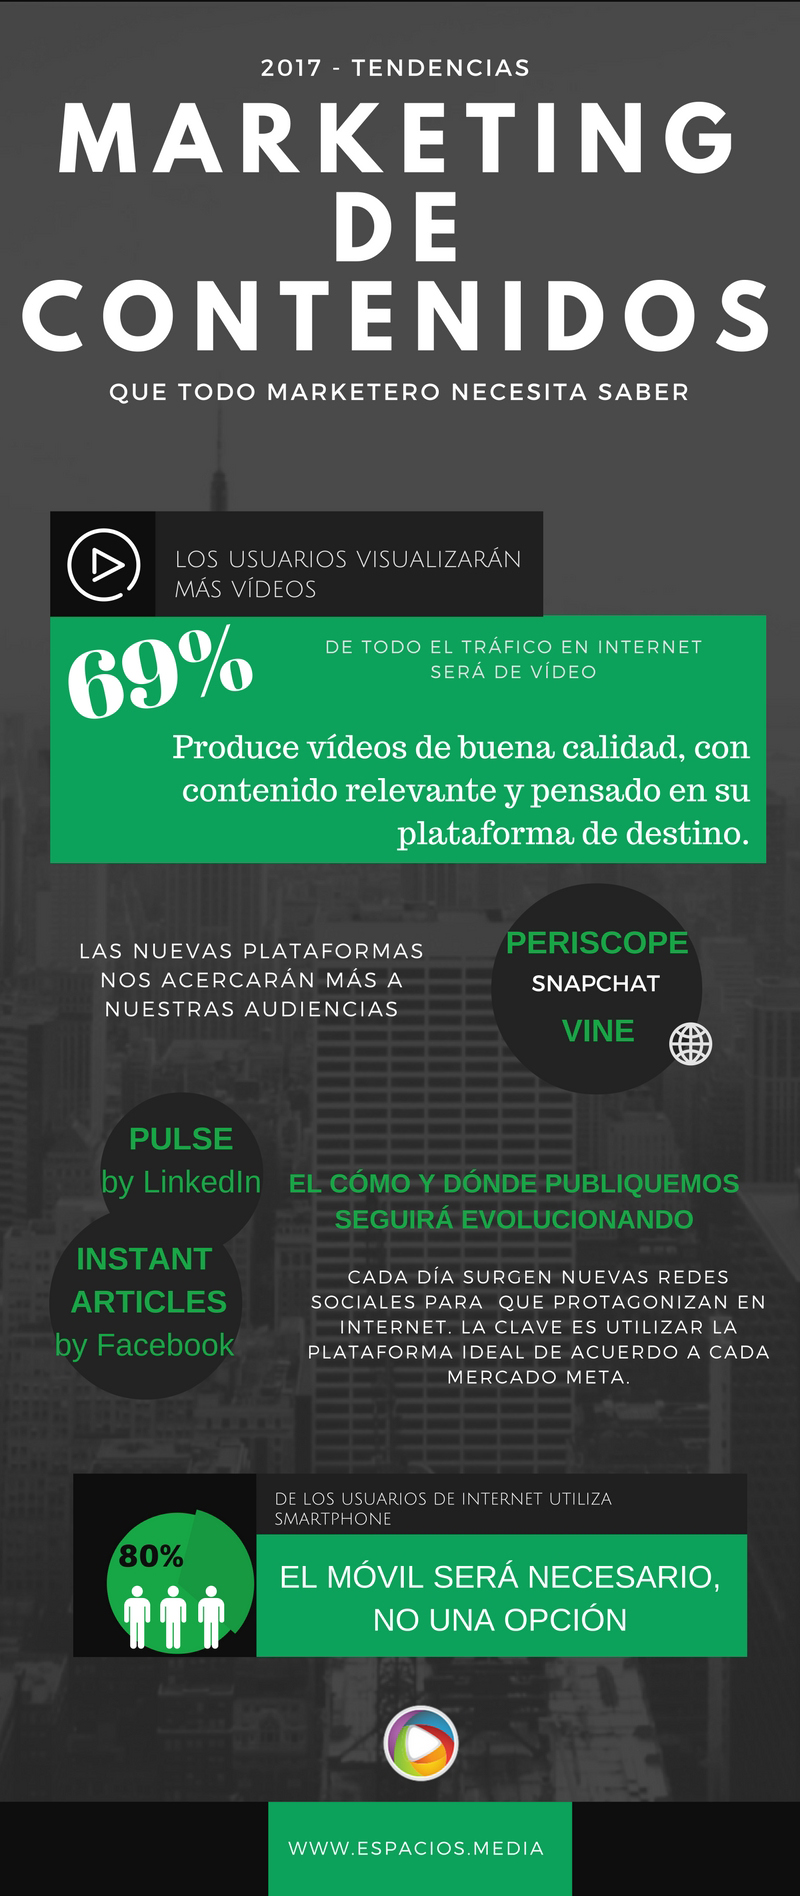 tendencias-en-marketing-de-contenidos-2017-content-marketing-trends-2017